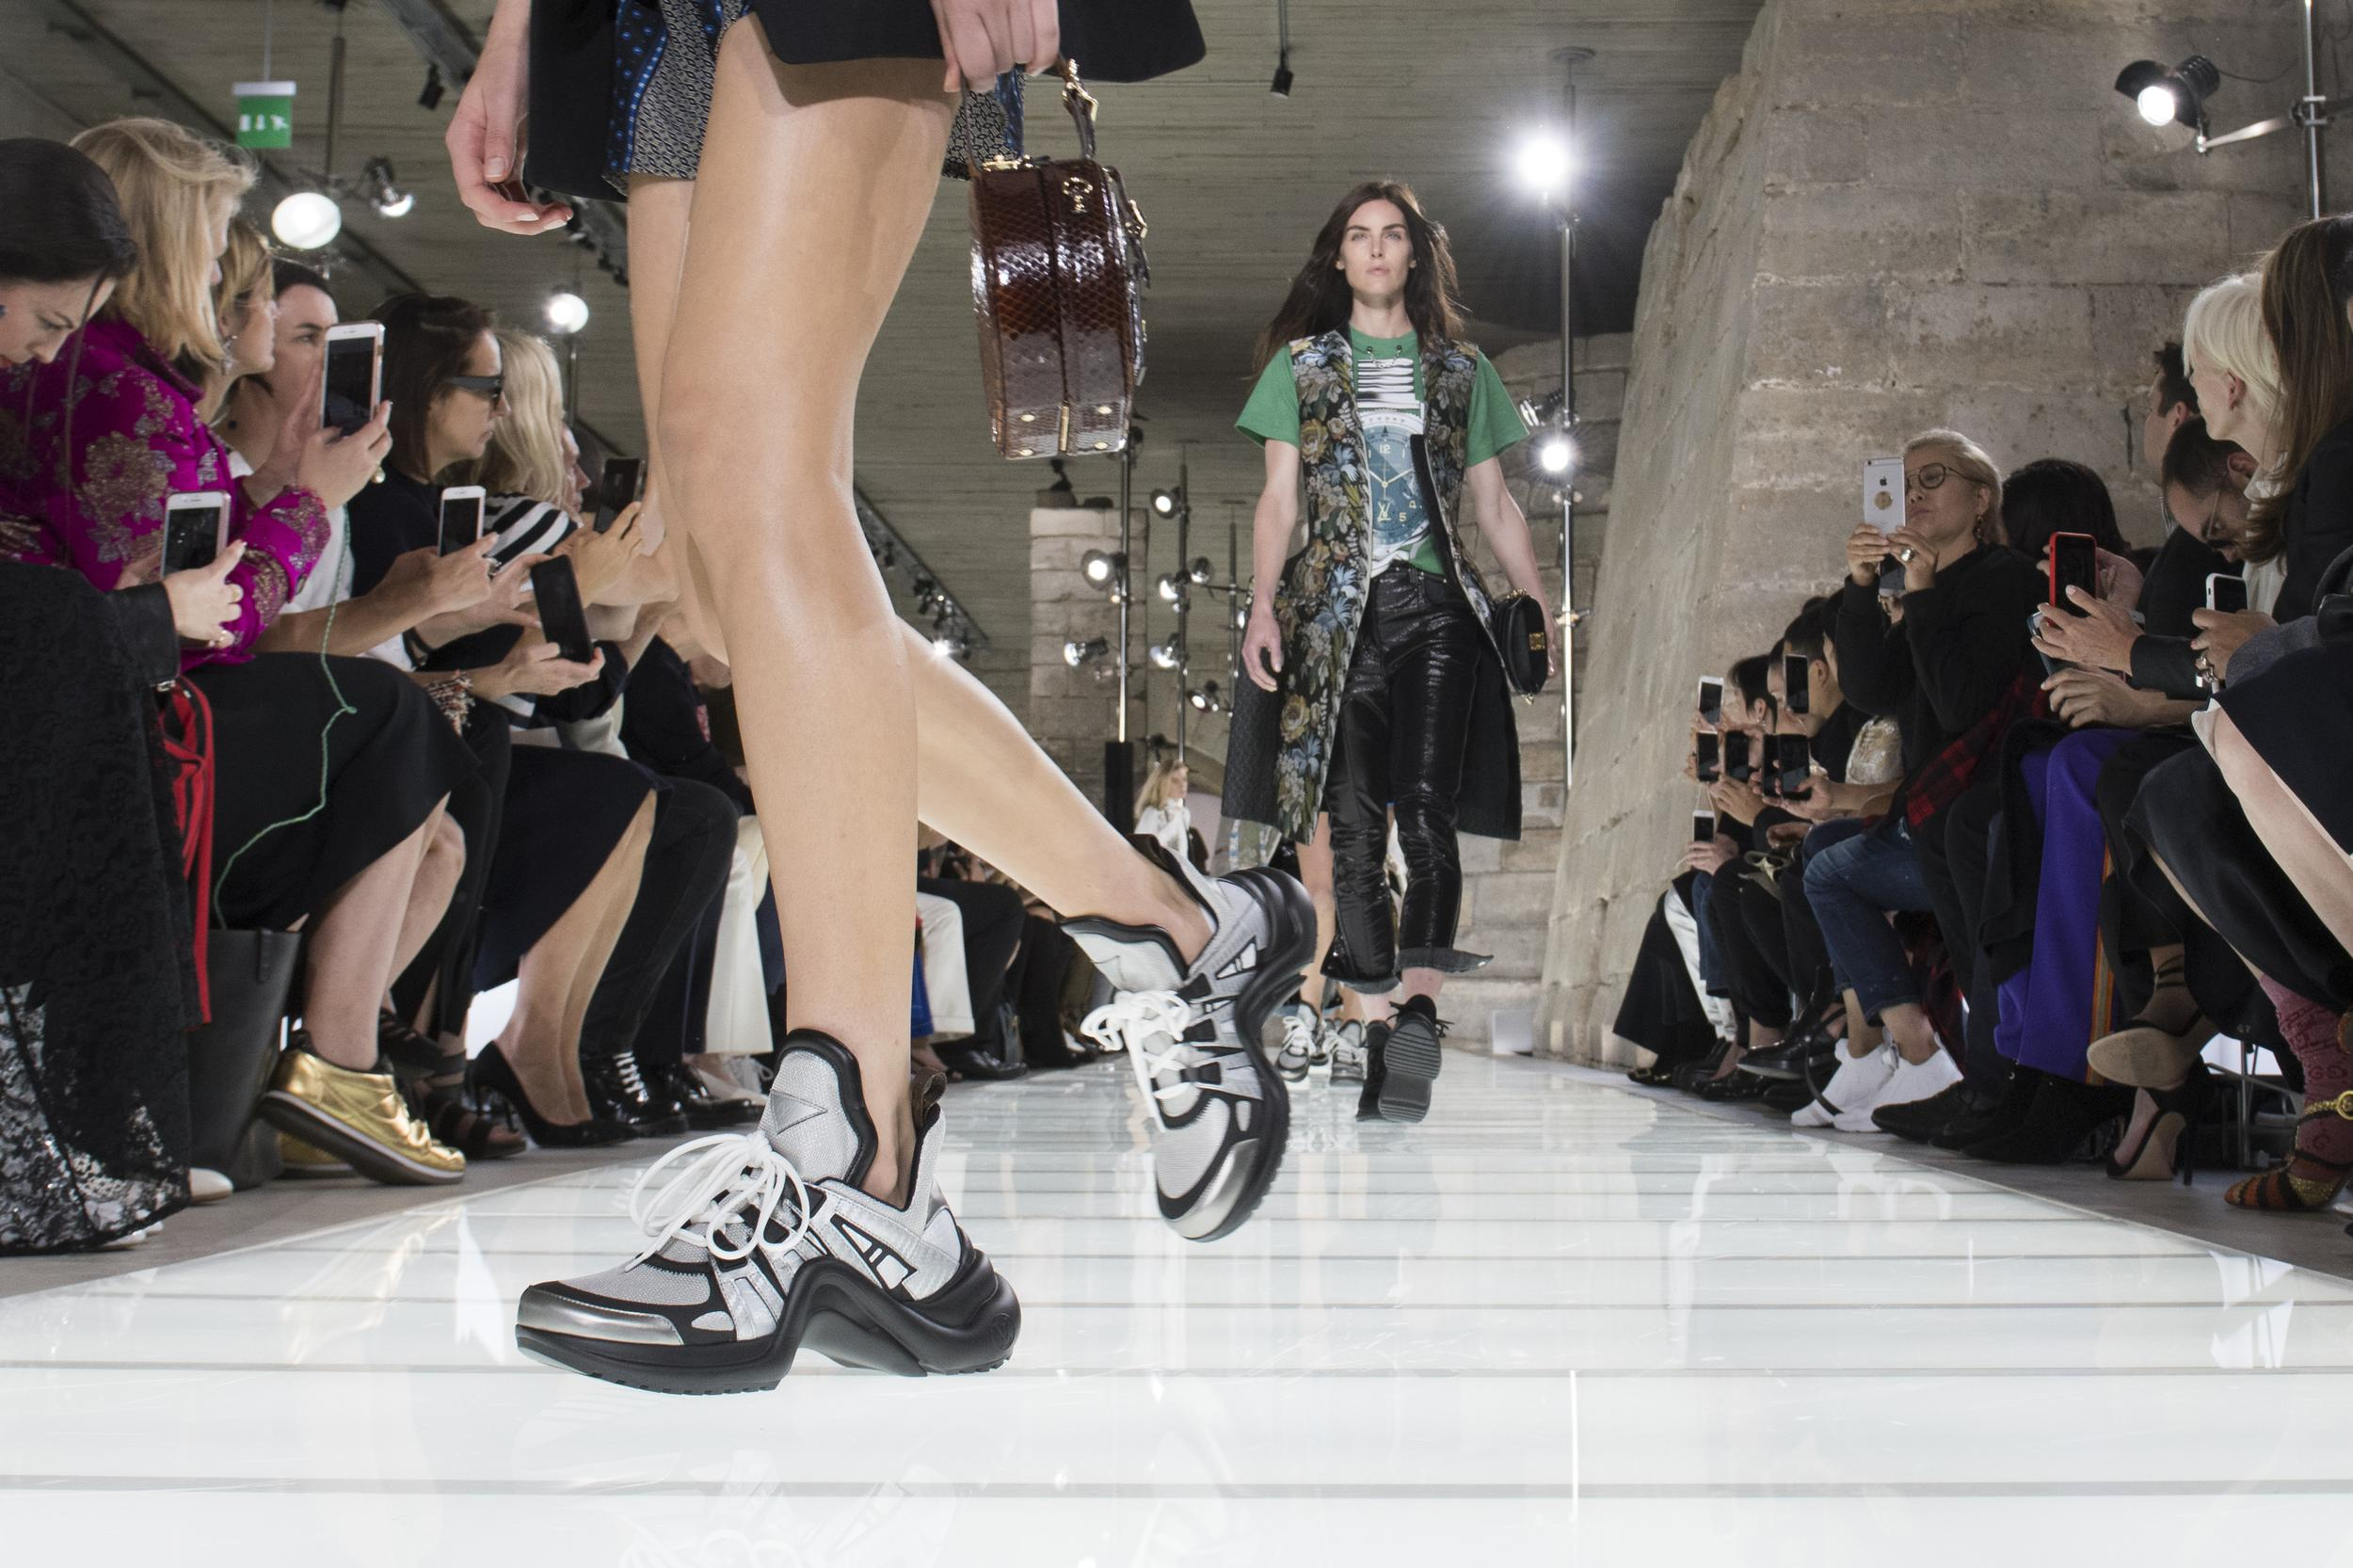 95c2246e64d5 Louis Vuitton Closes Paris Fashion Week with a Parade of Aristocratic  Sneakerheads